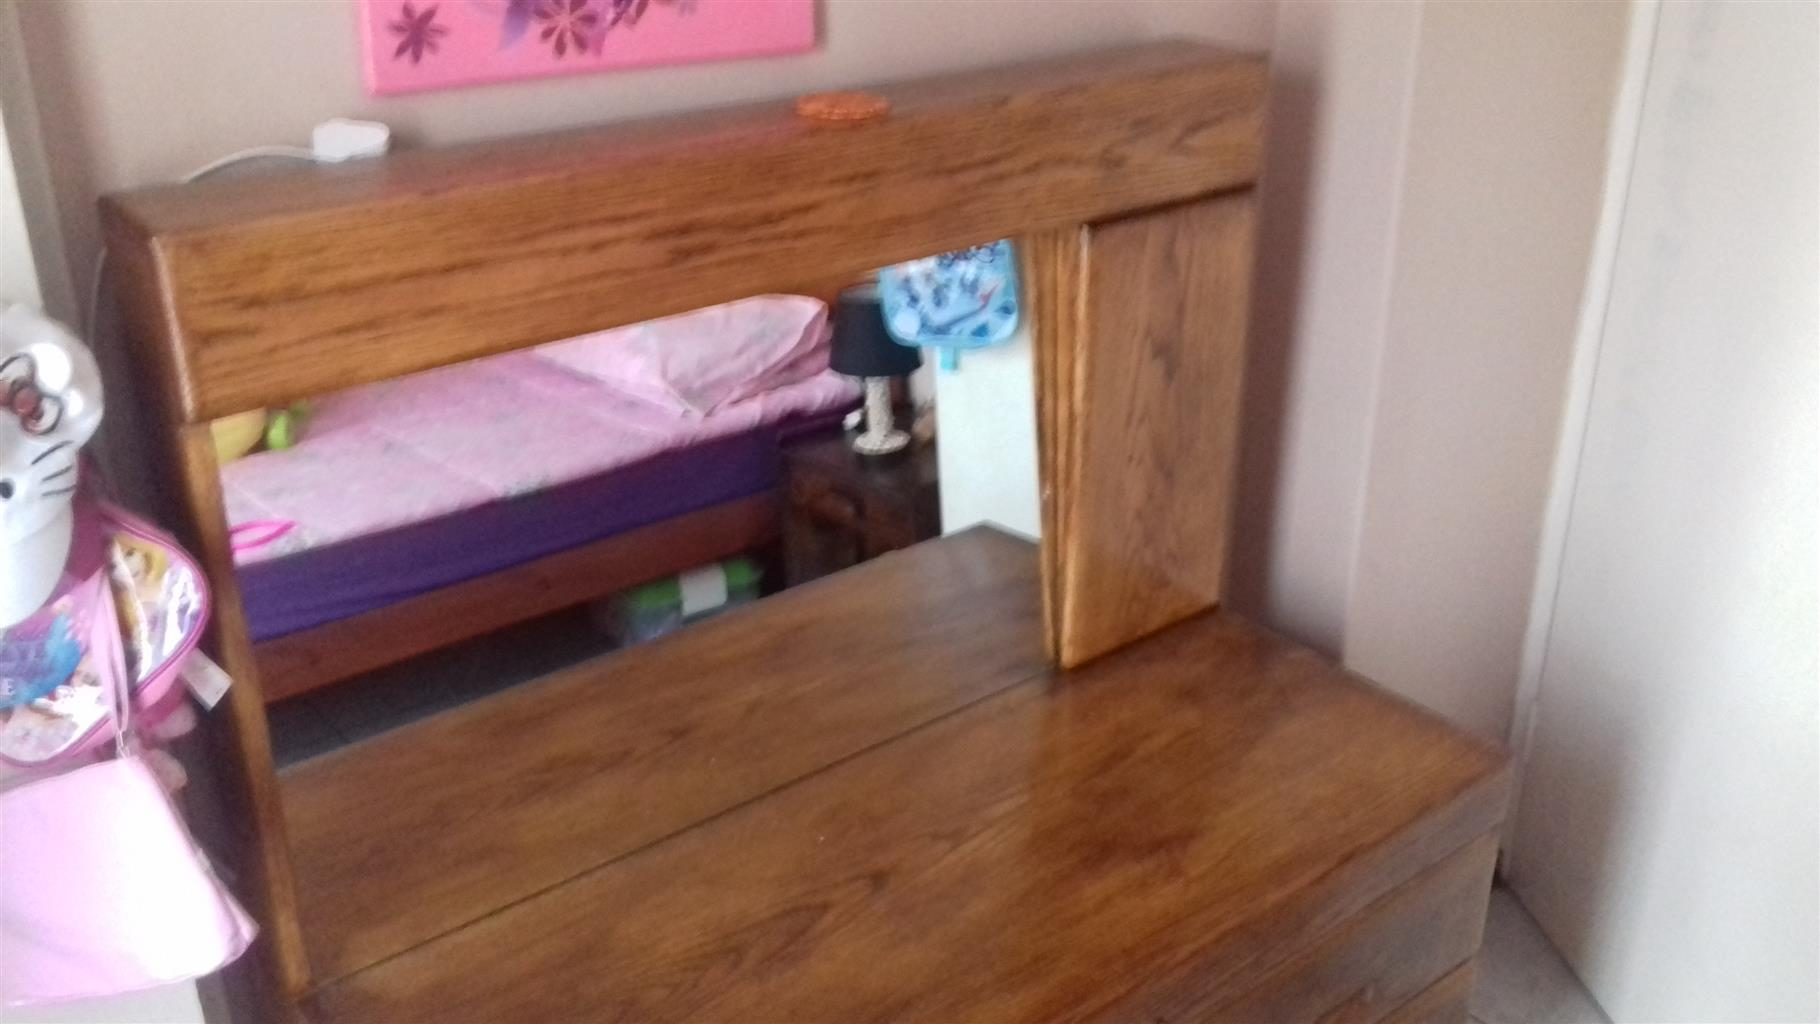 Table dresser with stool